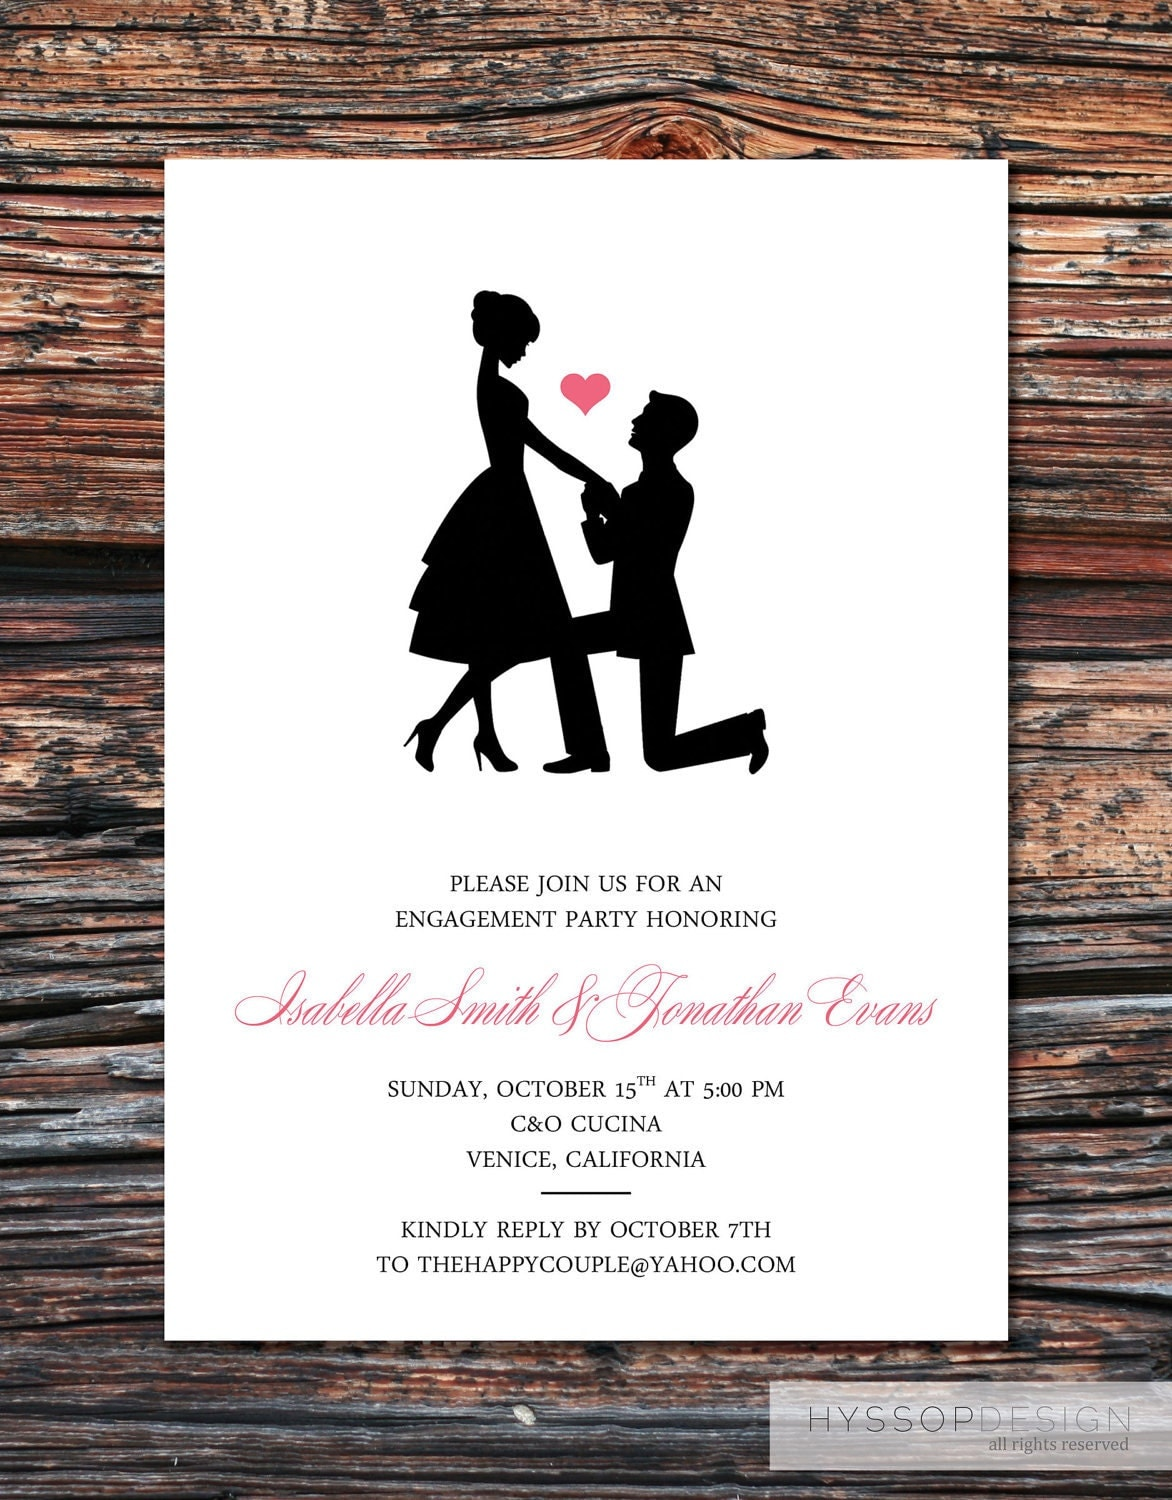 Printable diy sweet silhouette proposal by hyssopdesign on for Online engagement party invitations